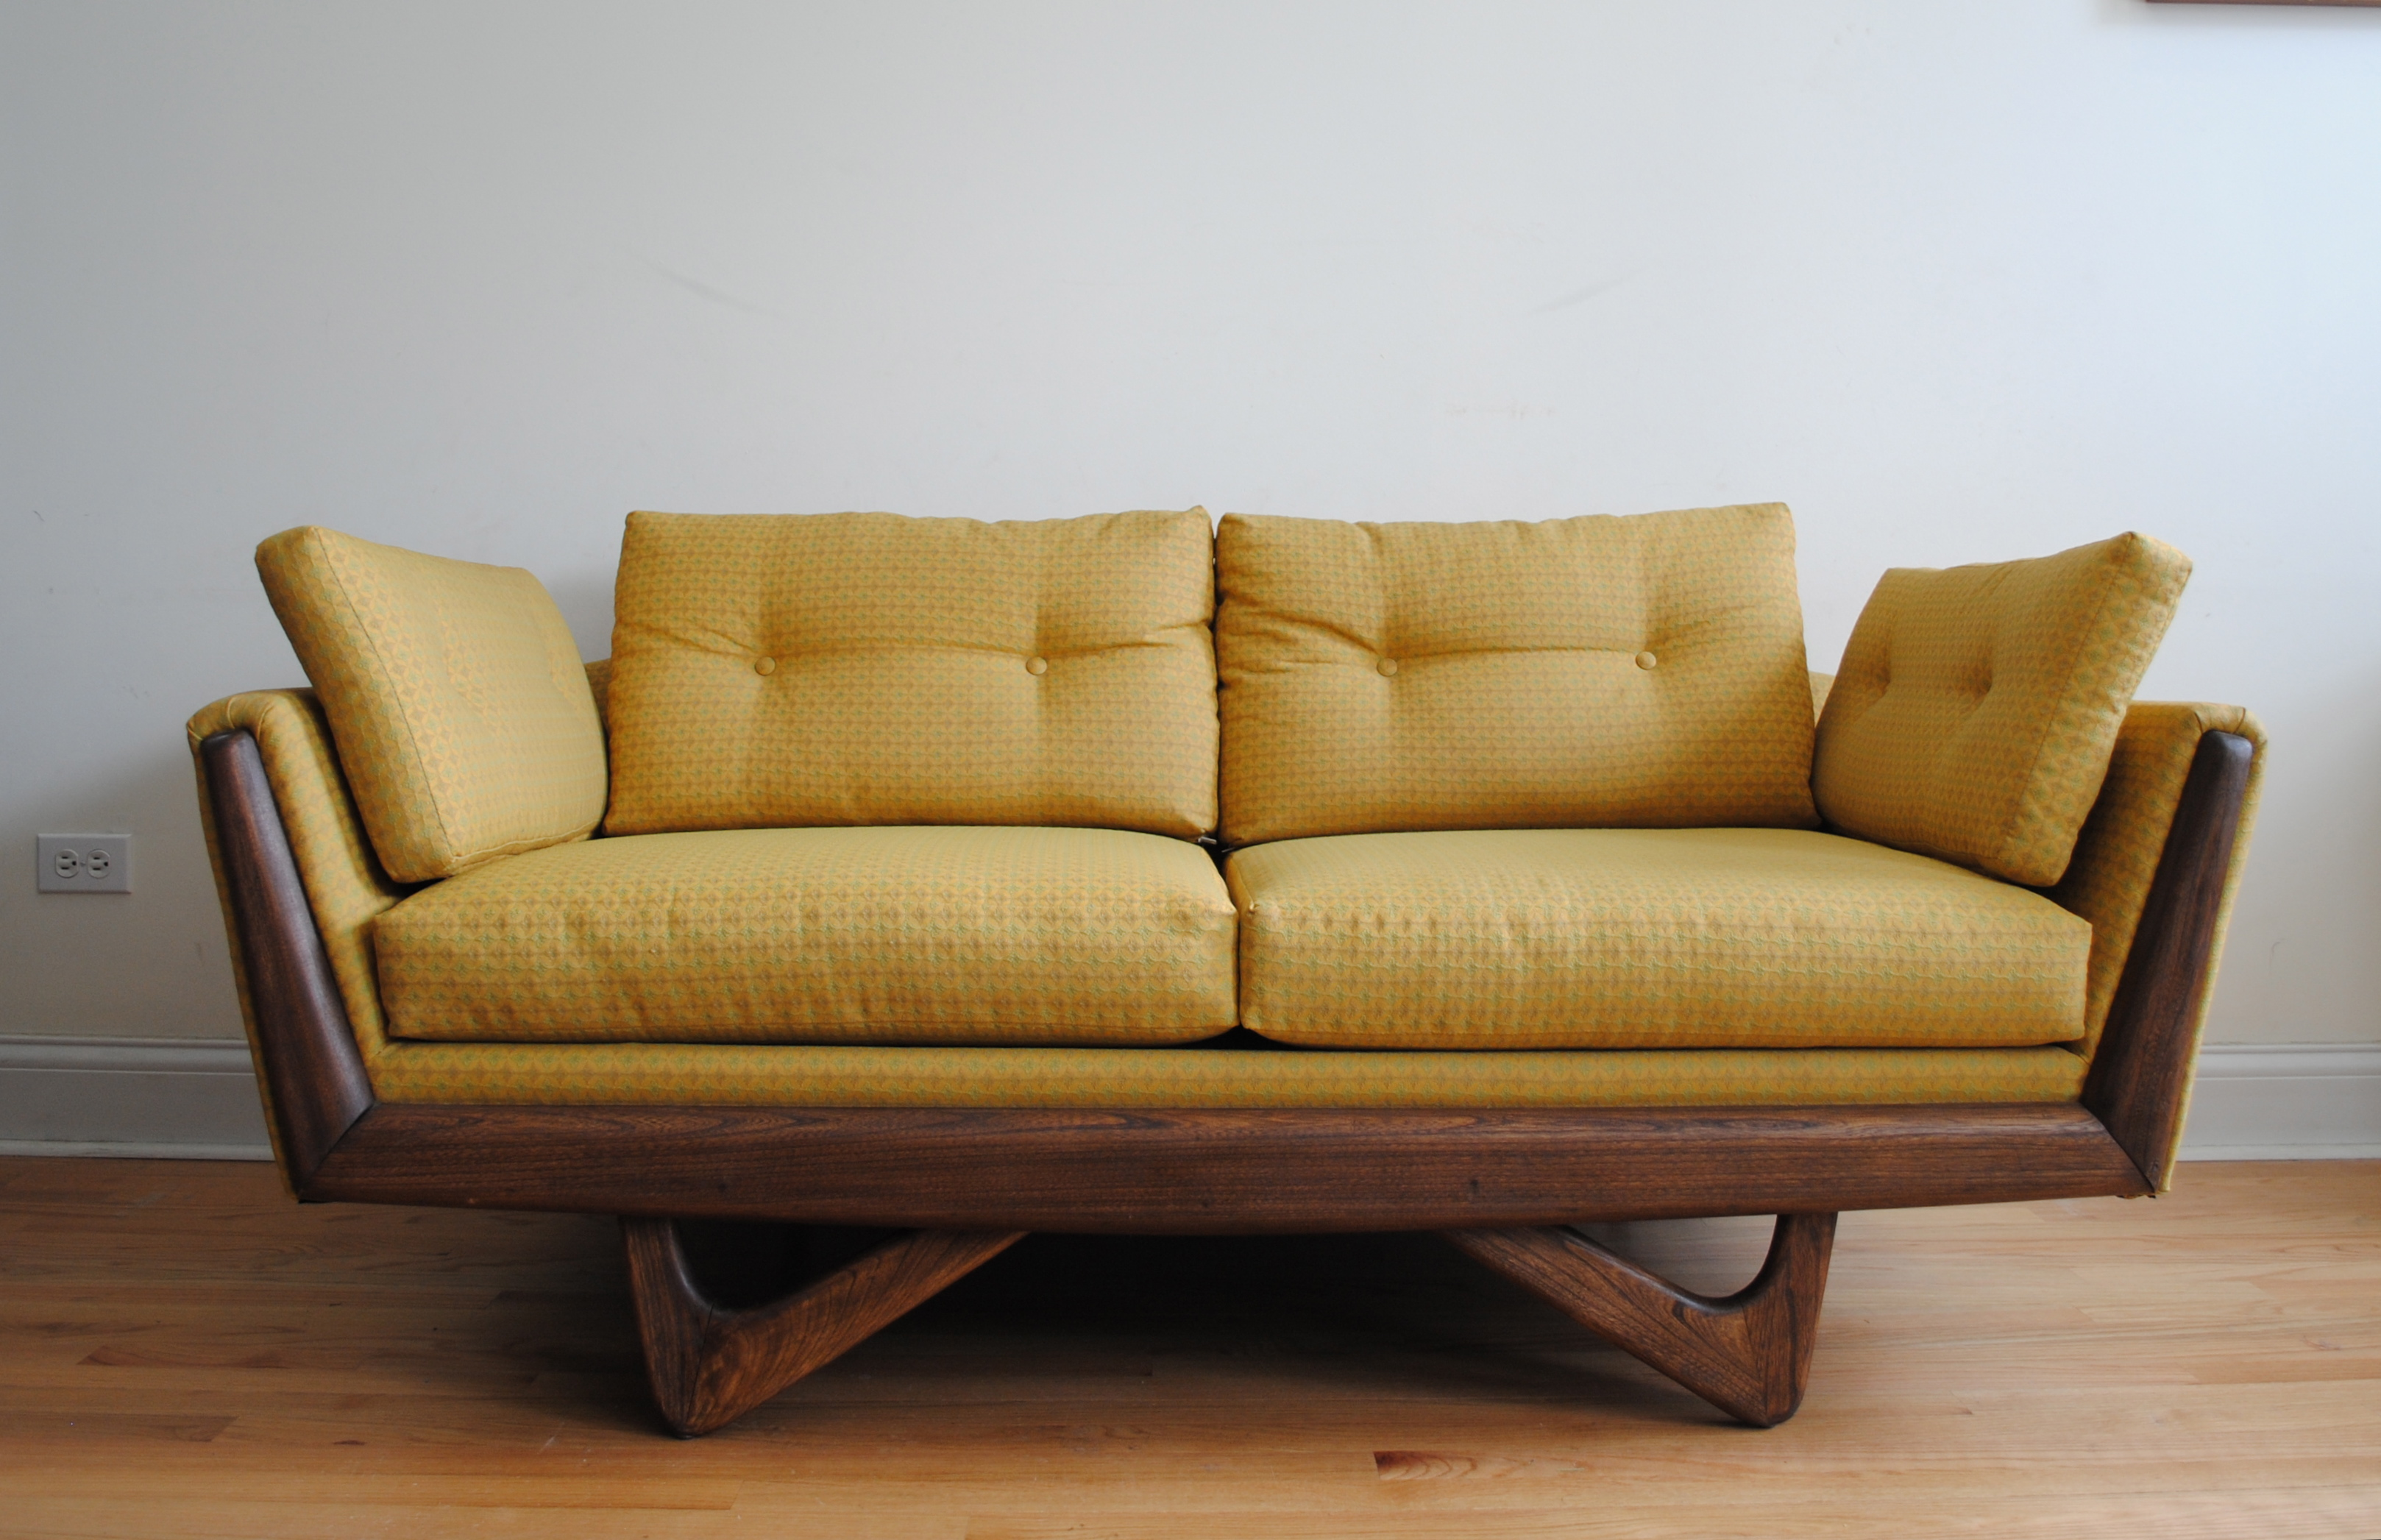 Mid century modern adrian pearsall sofa phylum furniture for Modern sofa chair